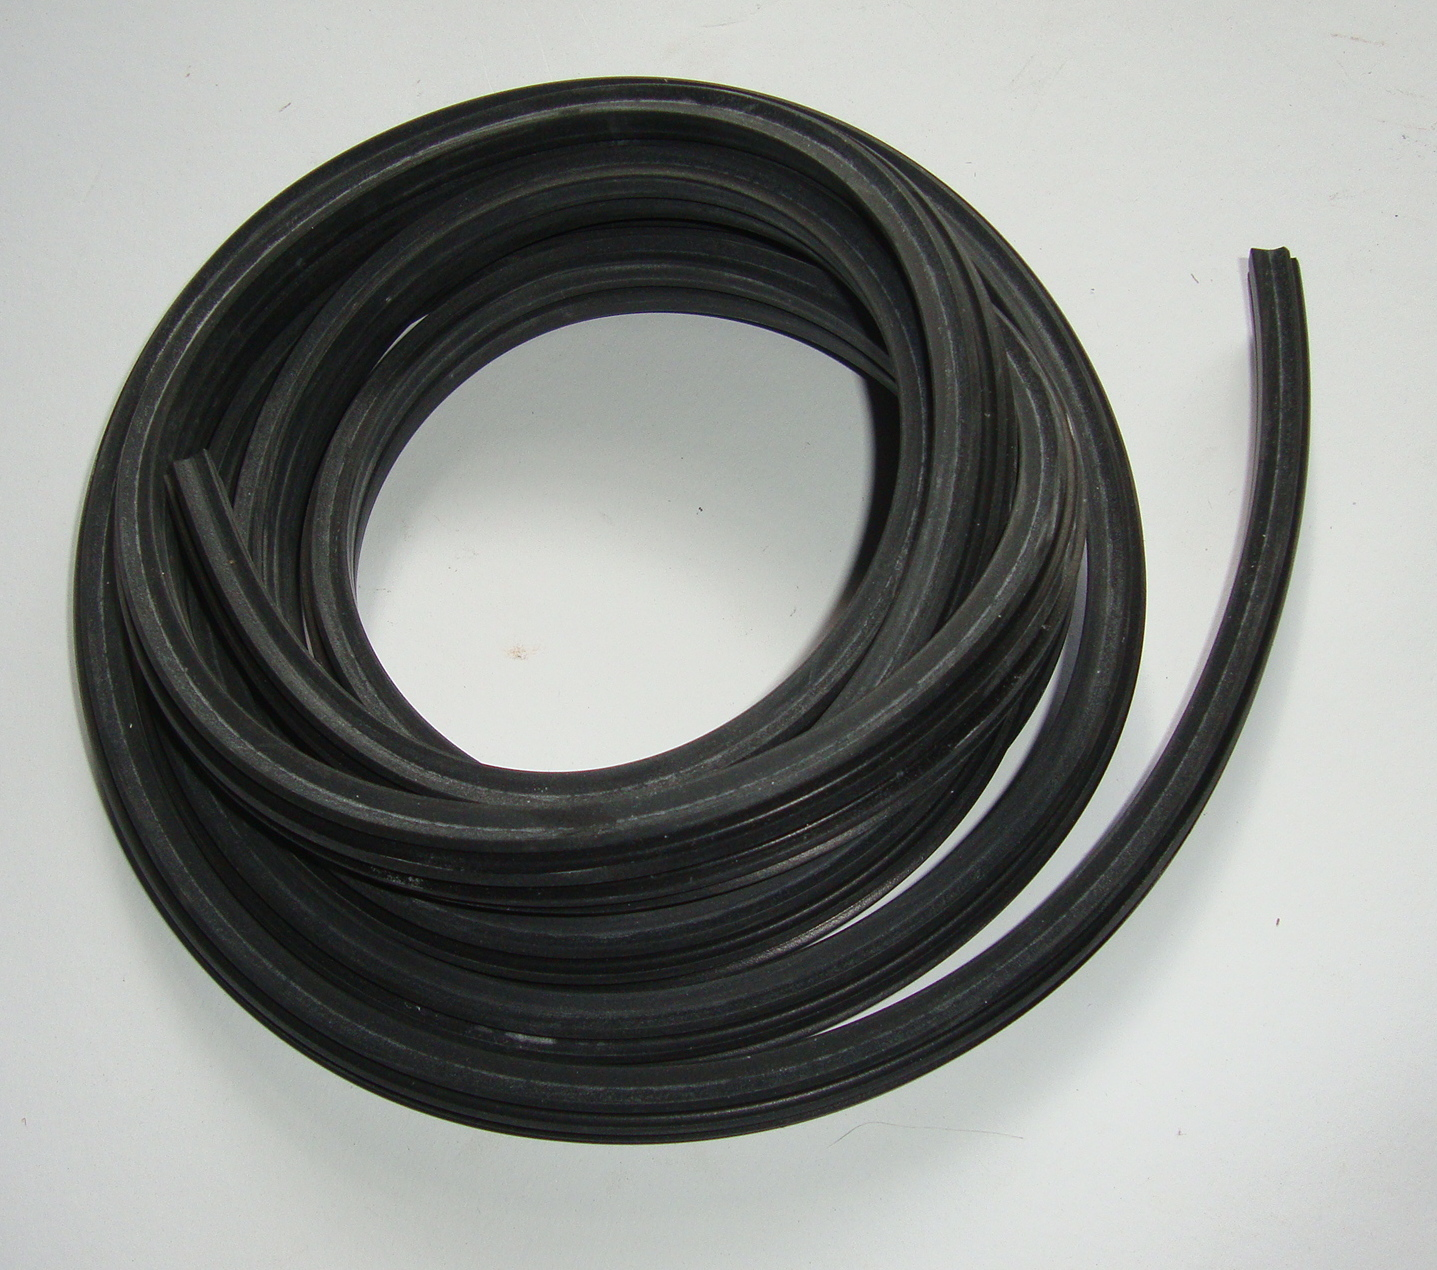 Rubber floor rail profile set, Mauro Pascoli, 125 VN1T > VN2T